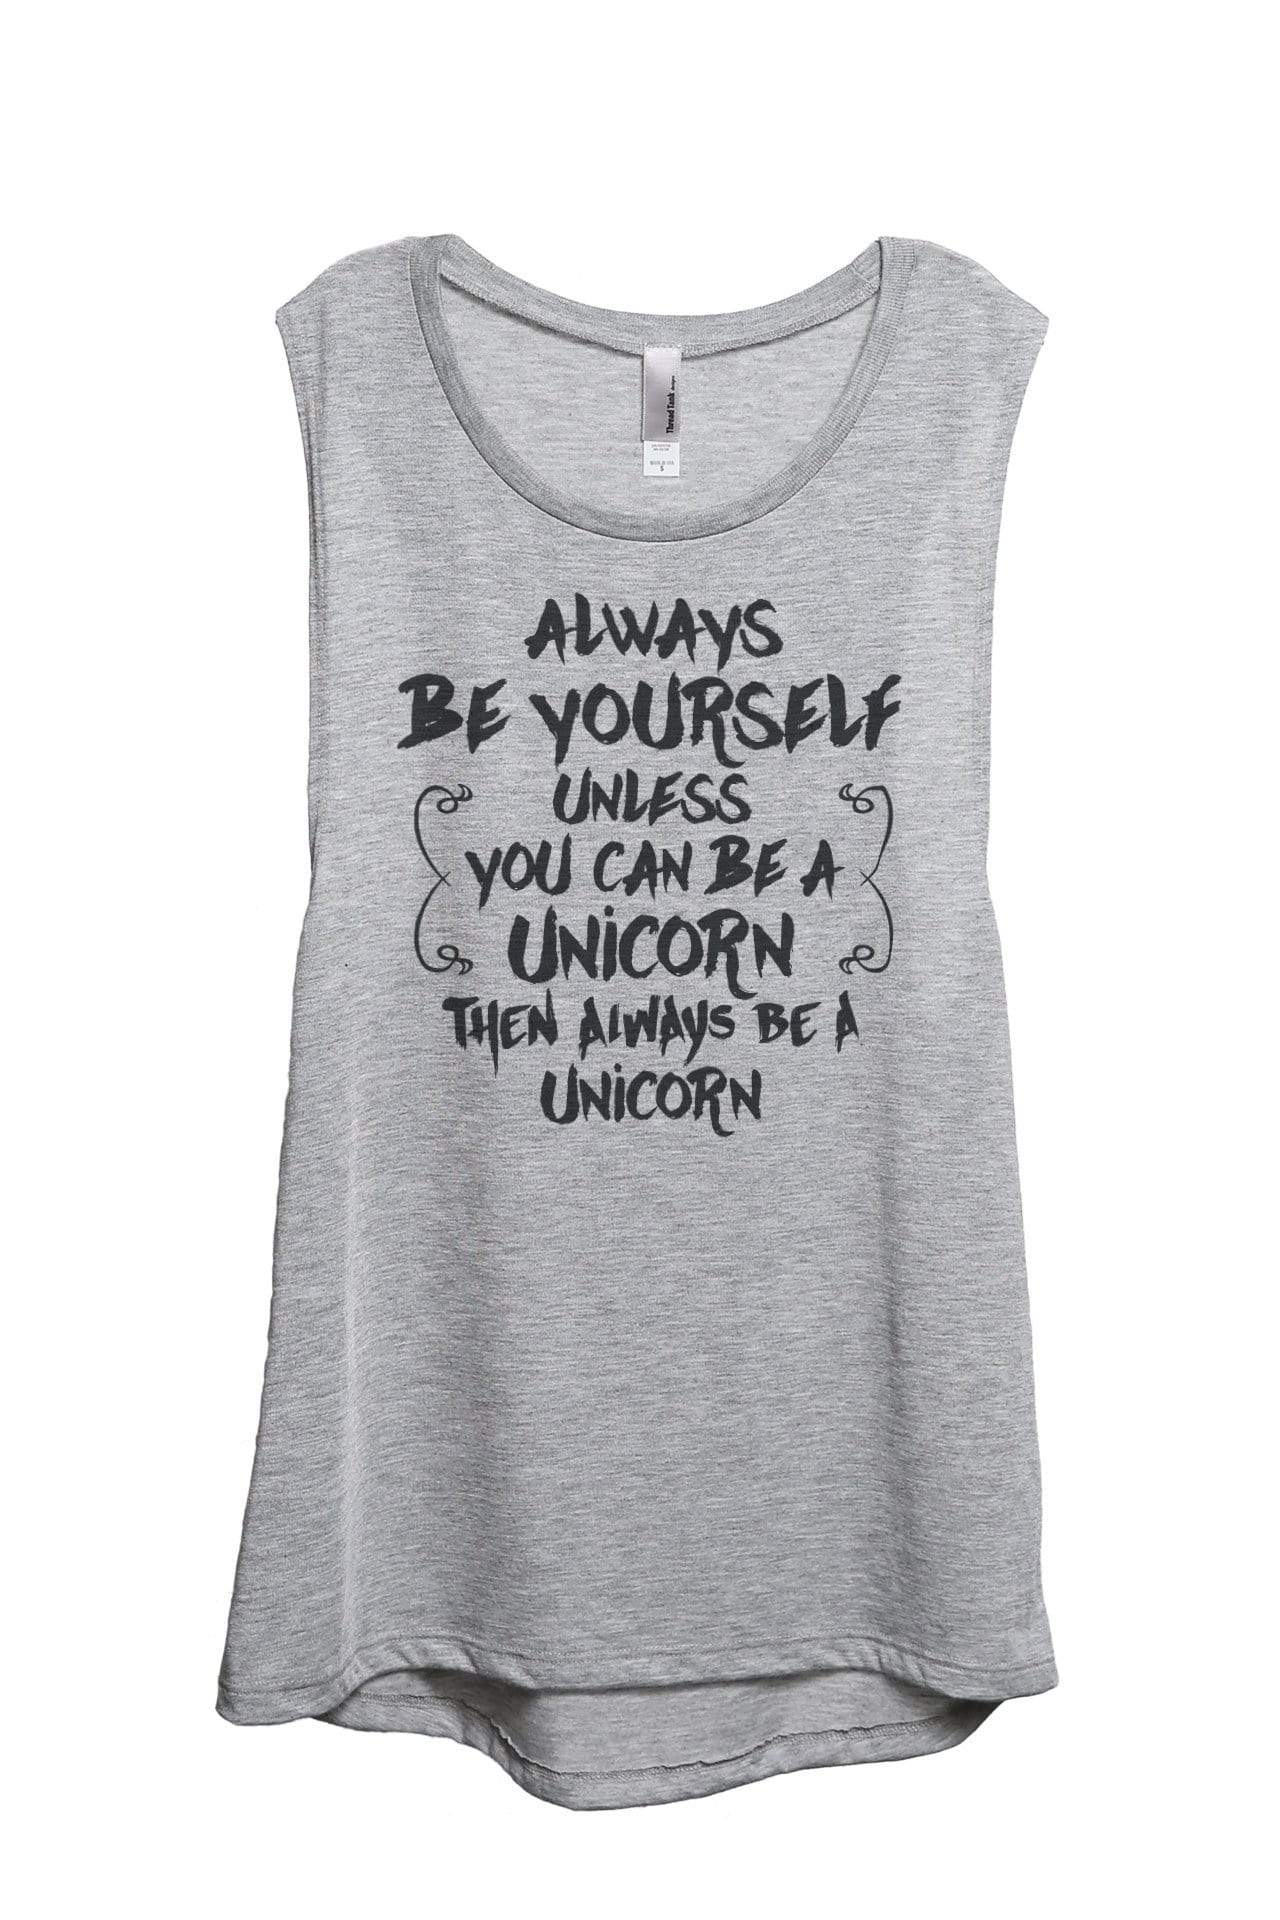 Always Be Yourself, Unicorn - Thread Tank | Stories You Can Wear | T-Shirts, Tank Tops and Sweatshirts